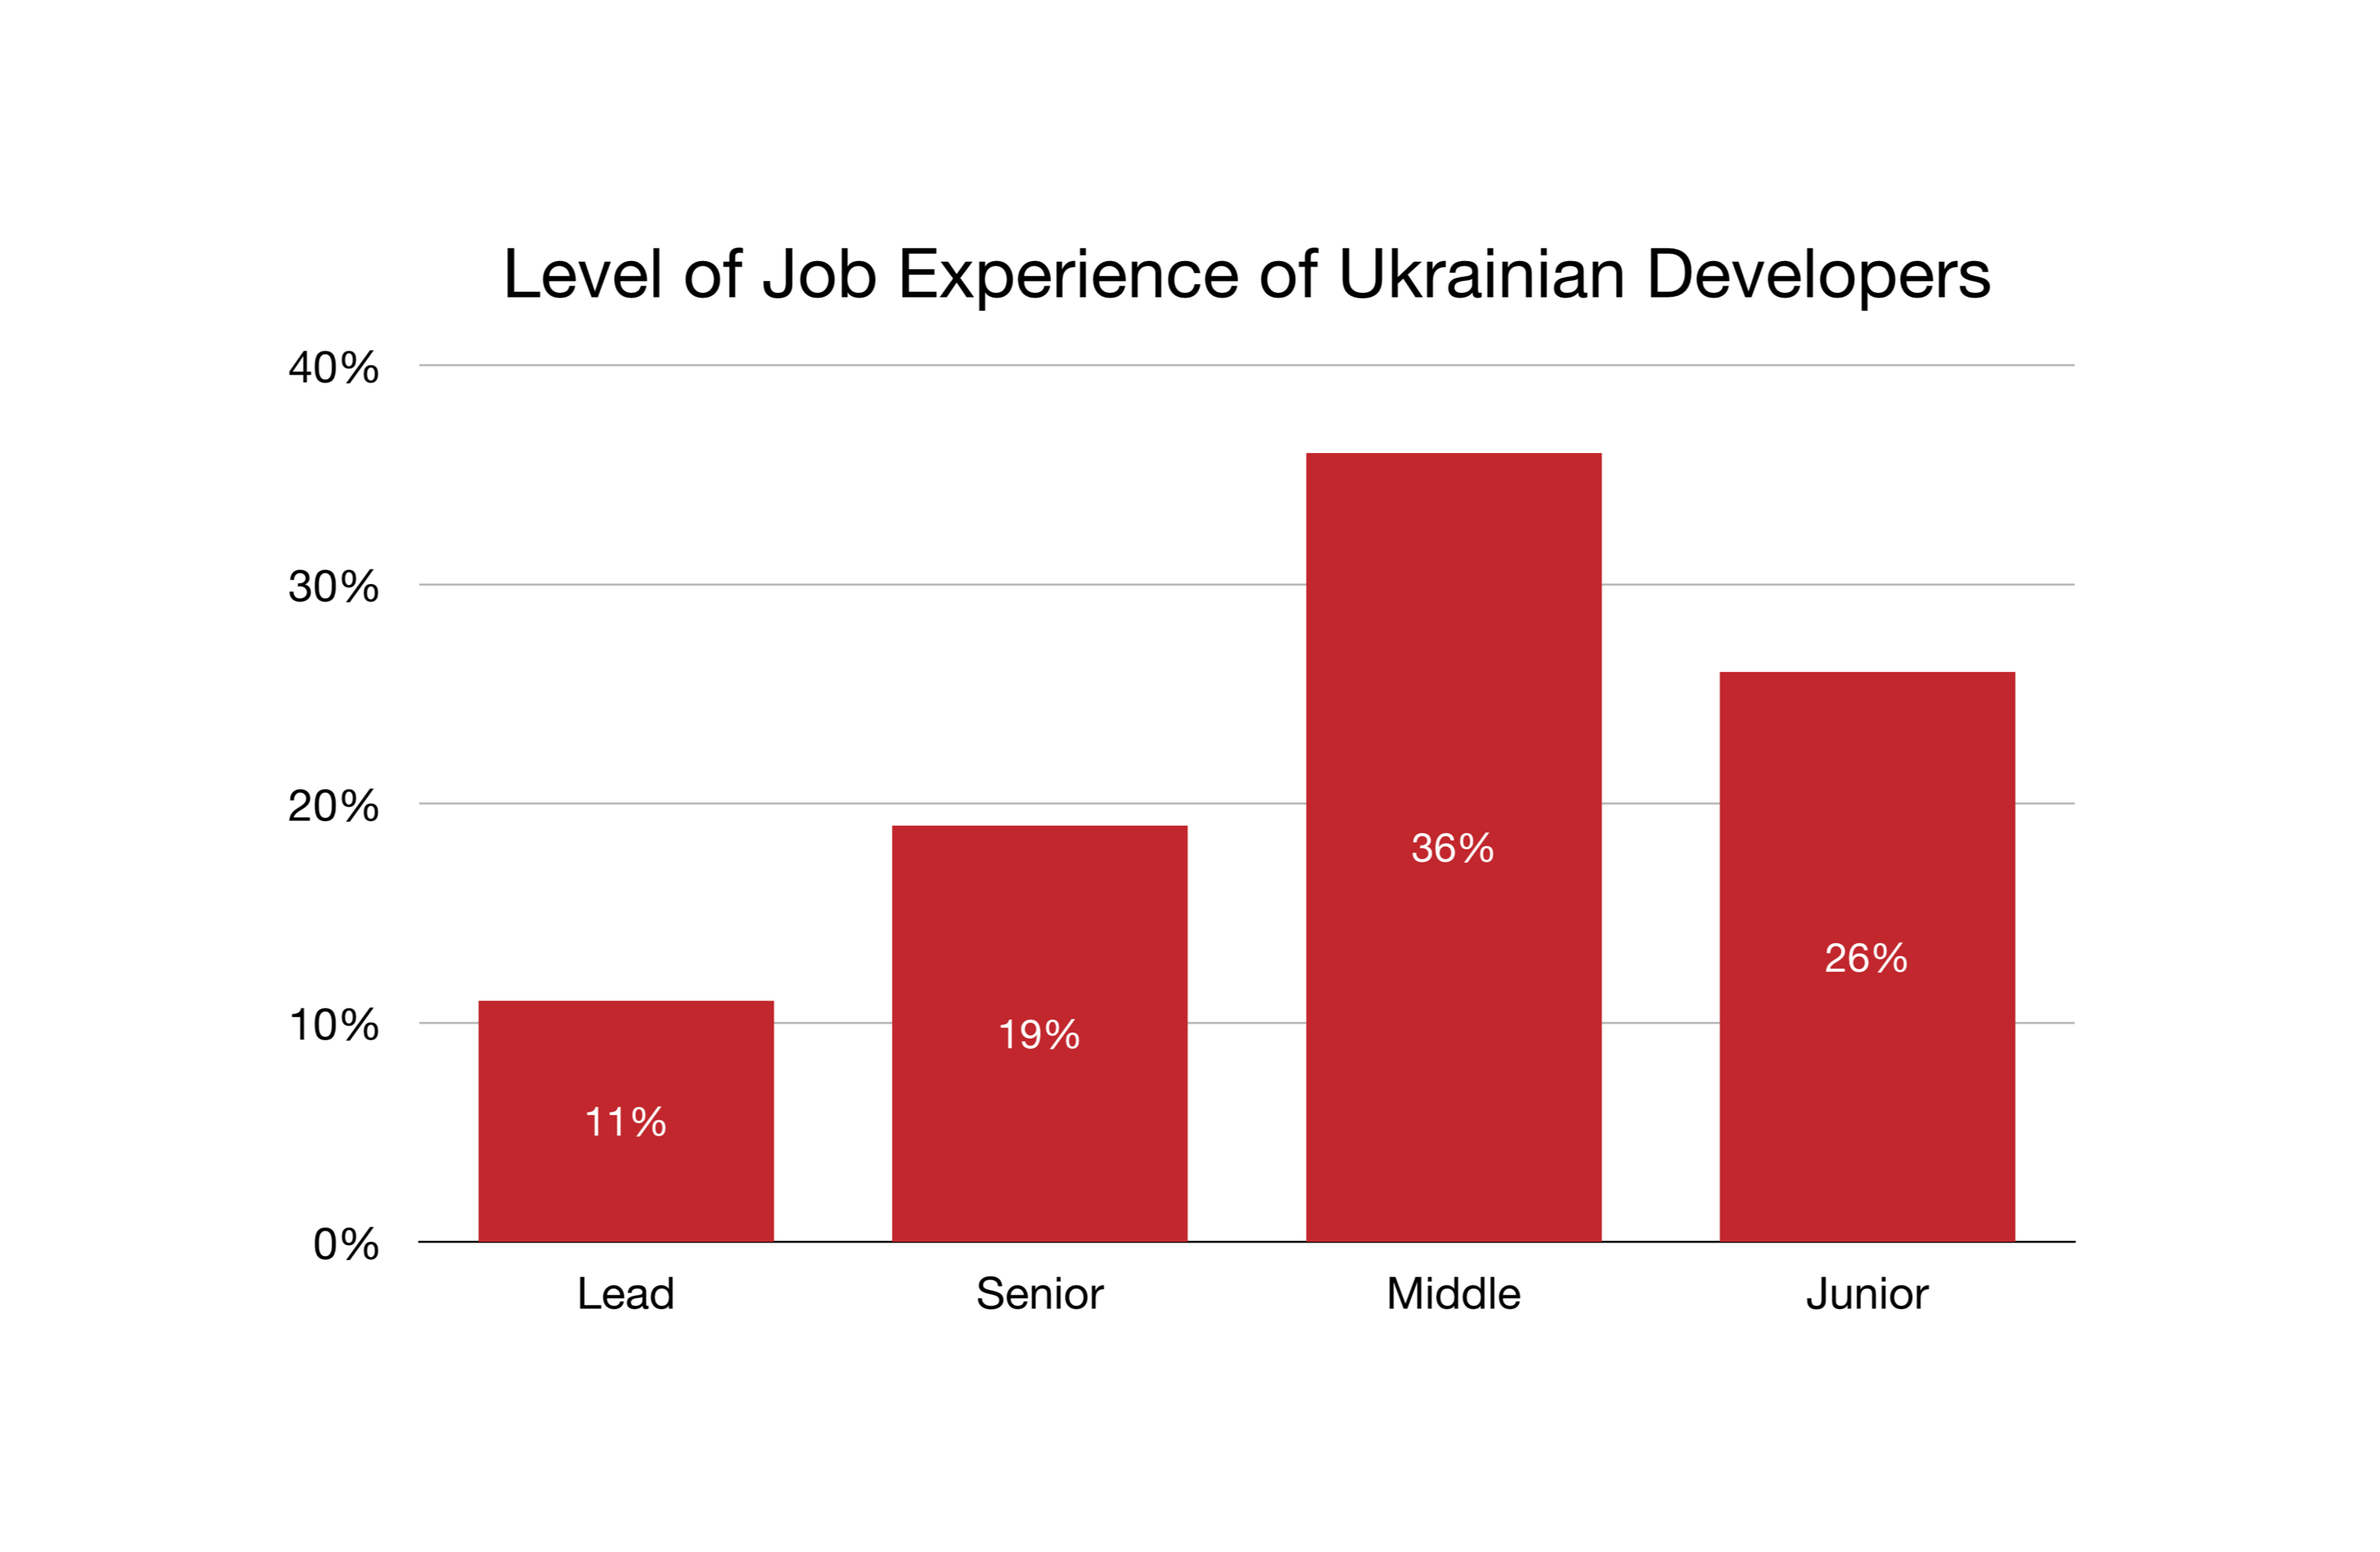 Level of Job Experience of Ukrainian Developers